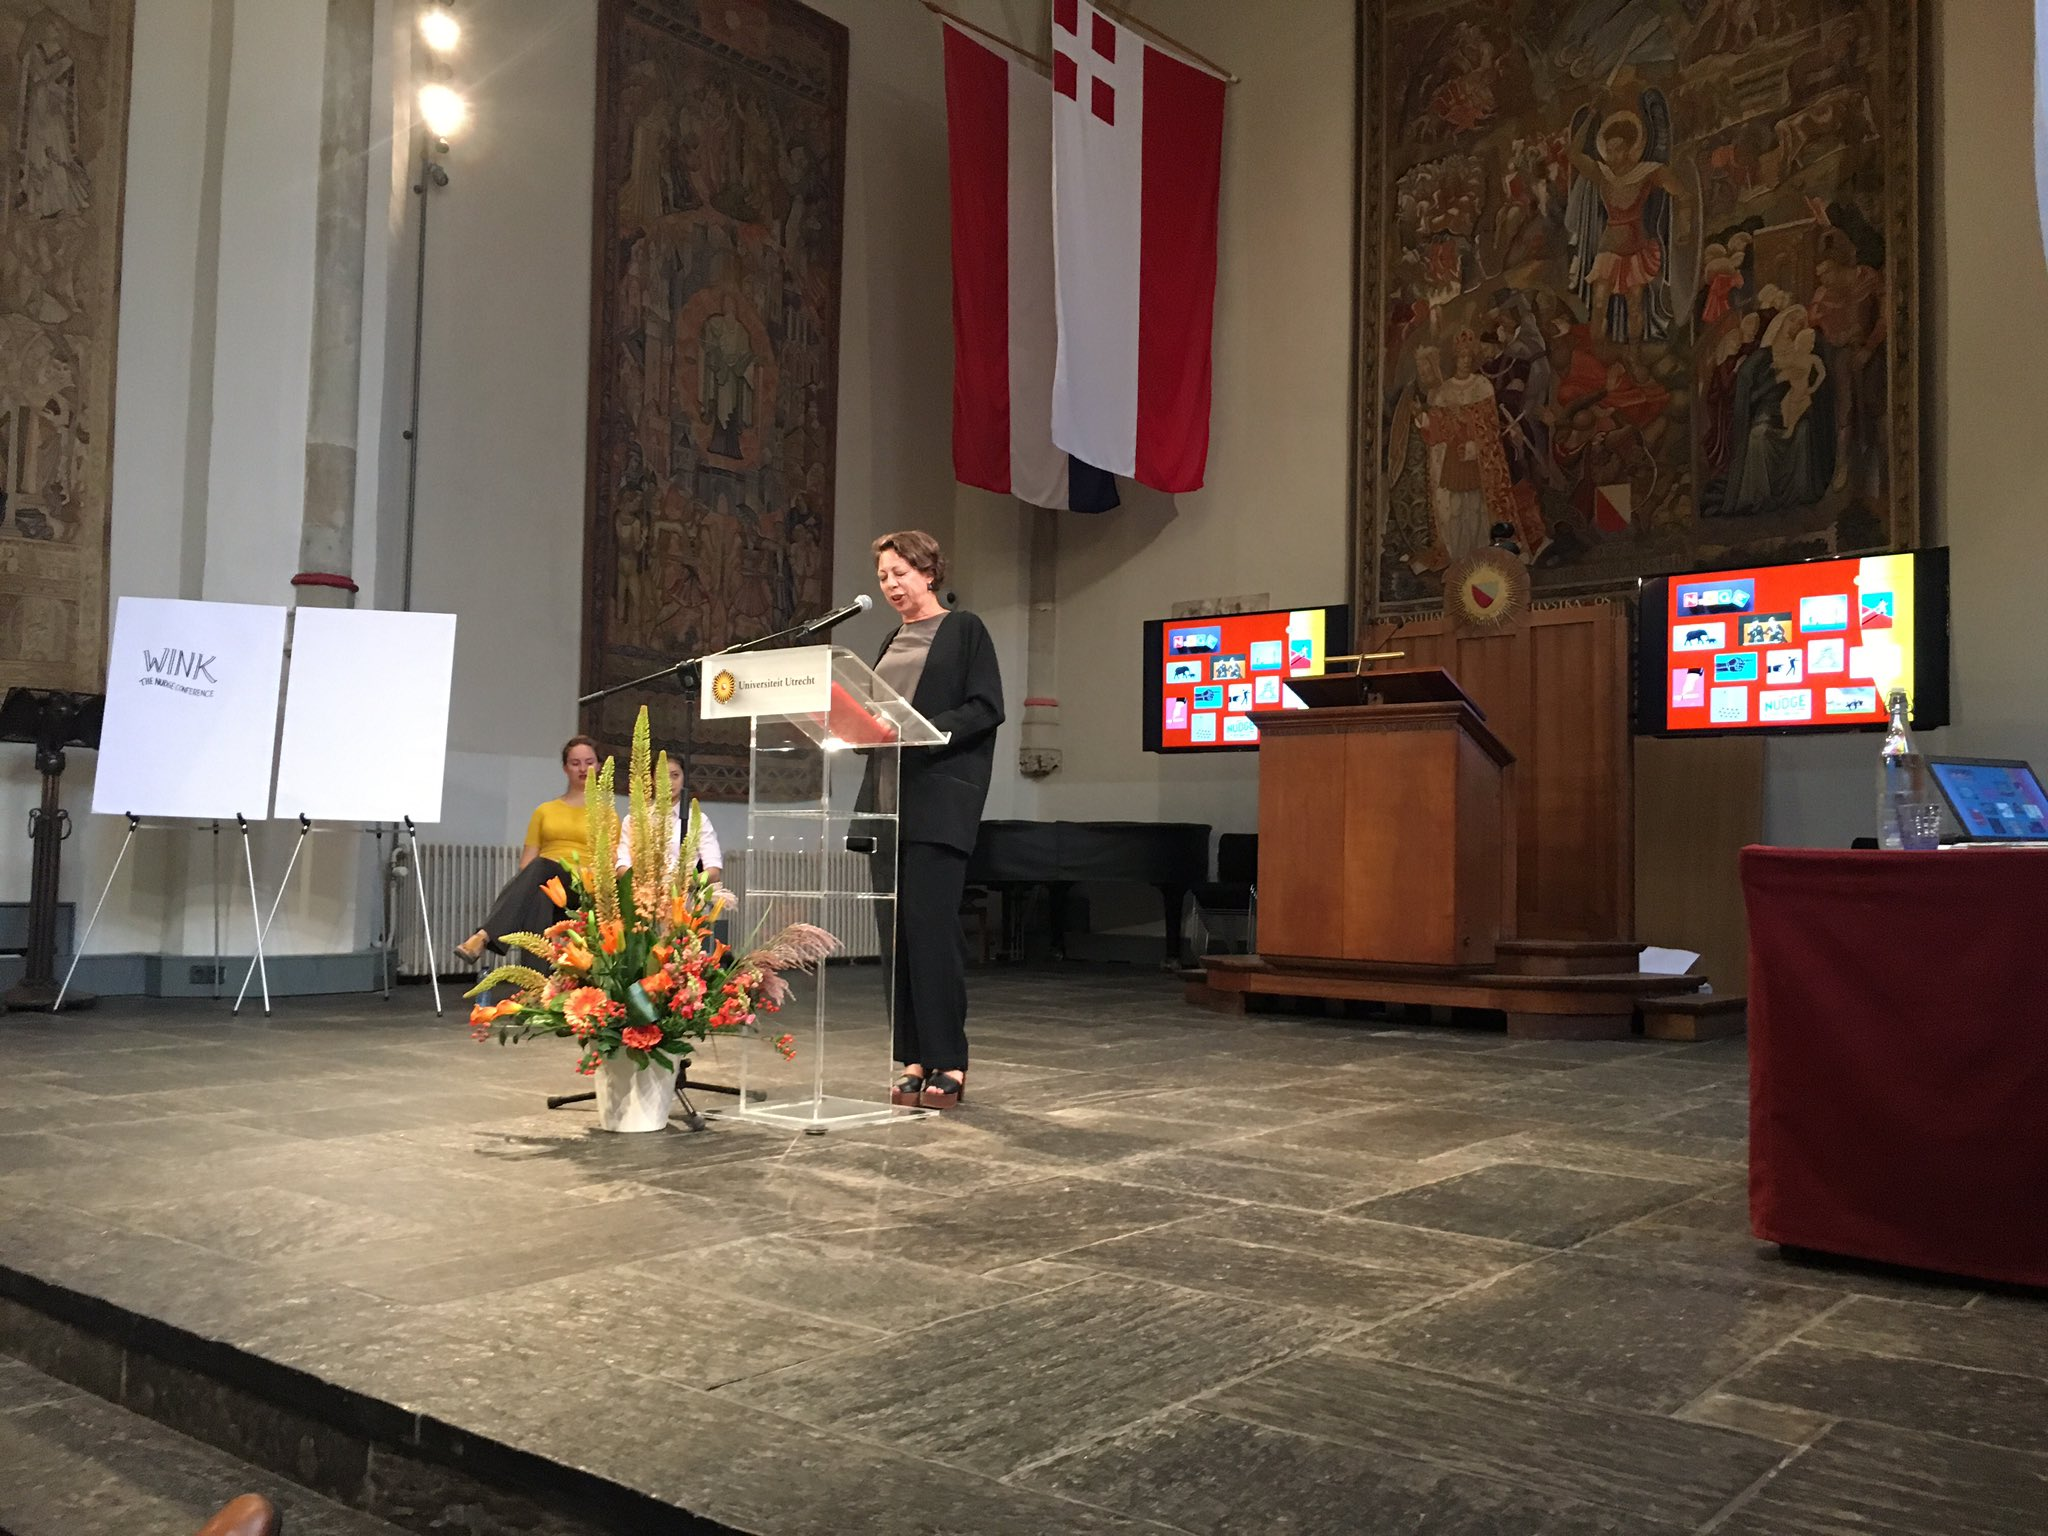 The first international #wink2017 nudging conference organized by Utrecht University and Wageningen University has started @UniUtrecht @WUR https://t.co/Hubppc0Ksg